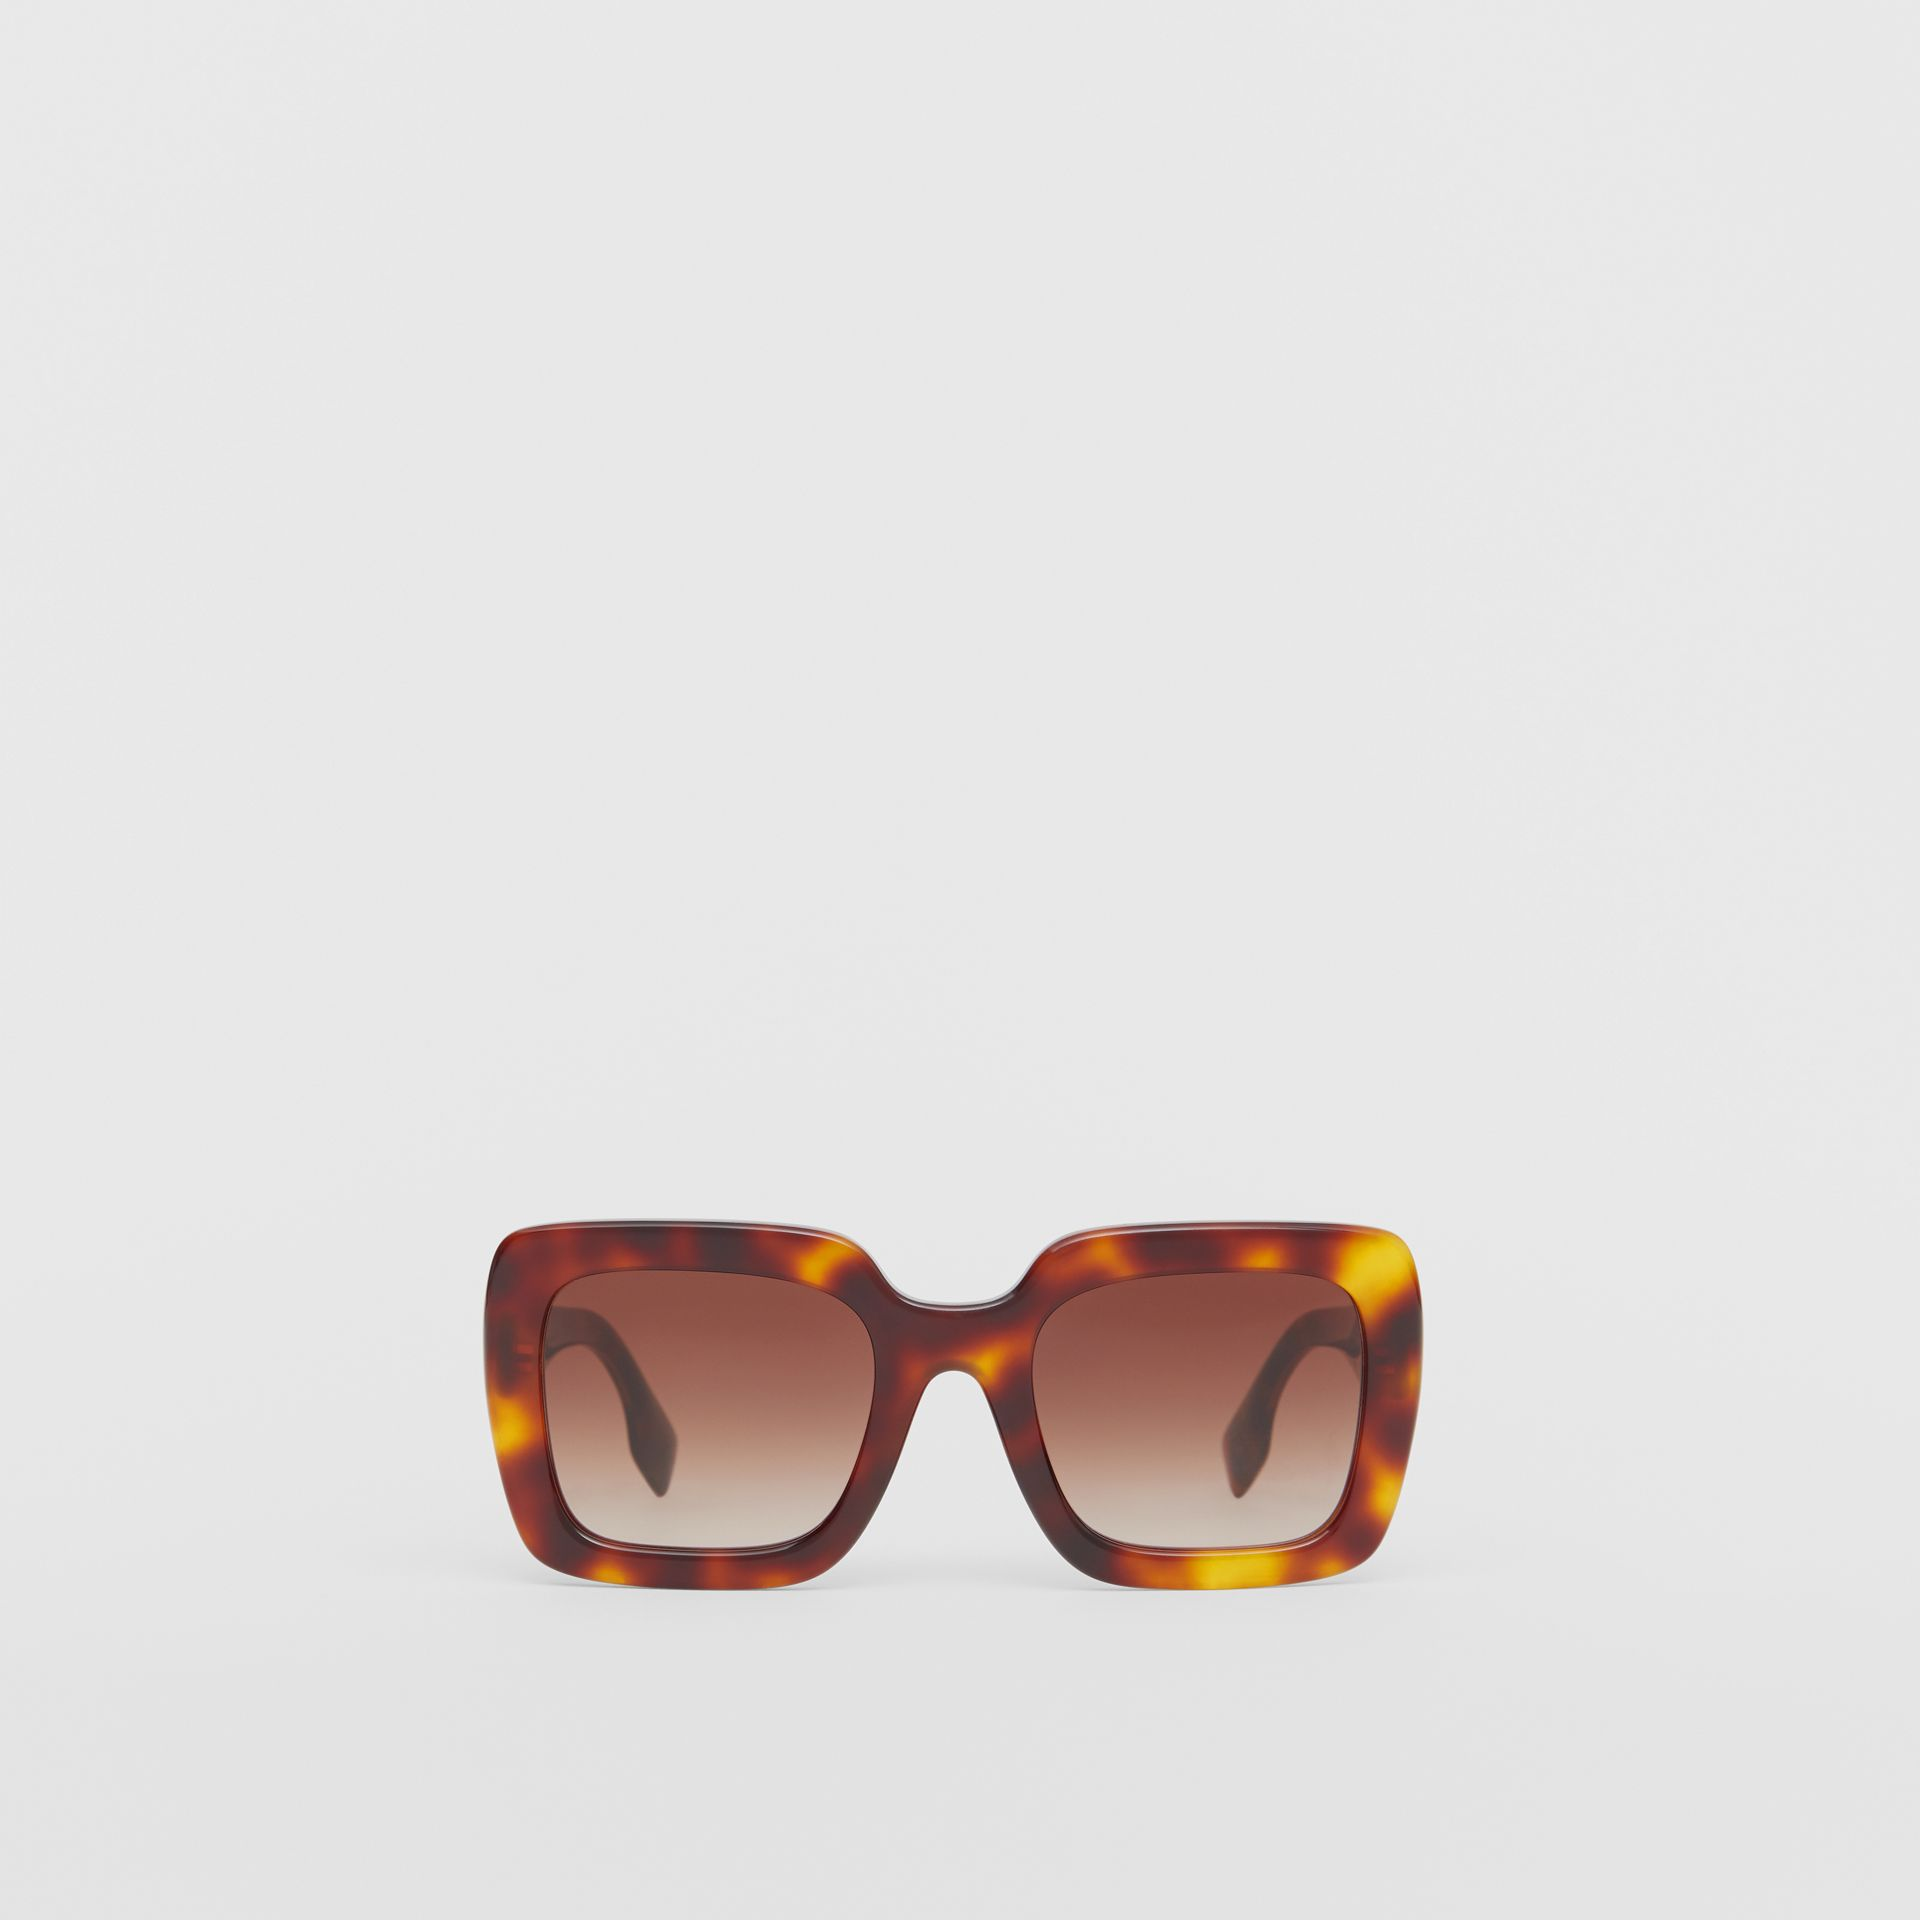 Oversized Square Frame Sunglasses in Tortoiseshell - Women | Burberry Singapore - gallery image 0